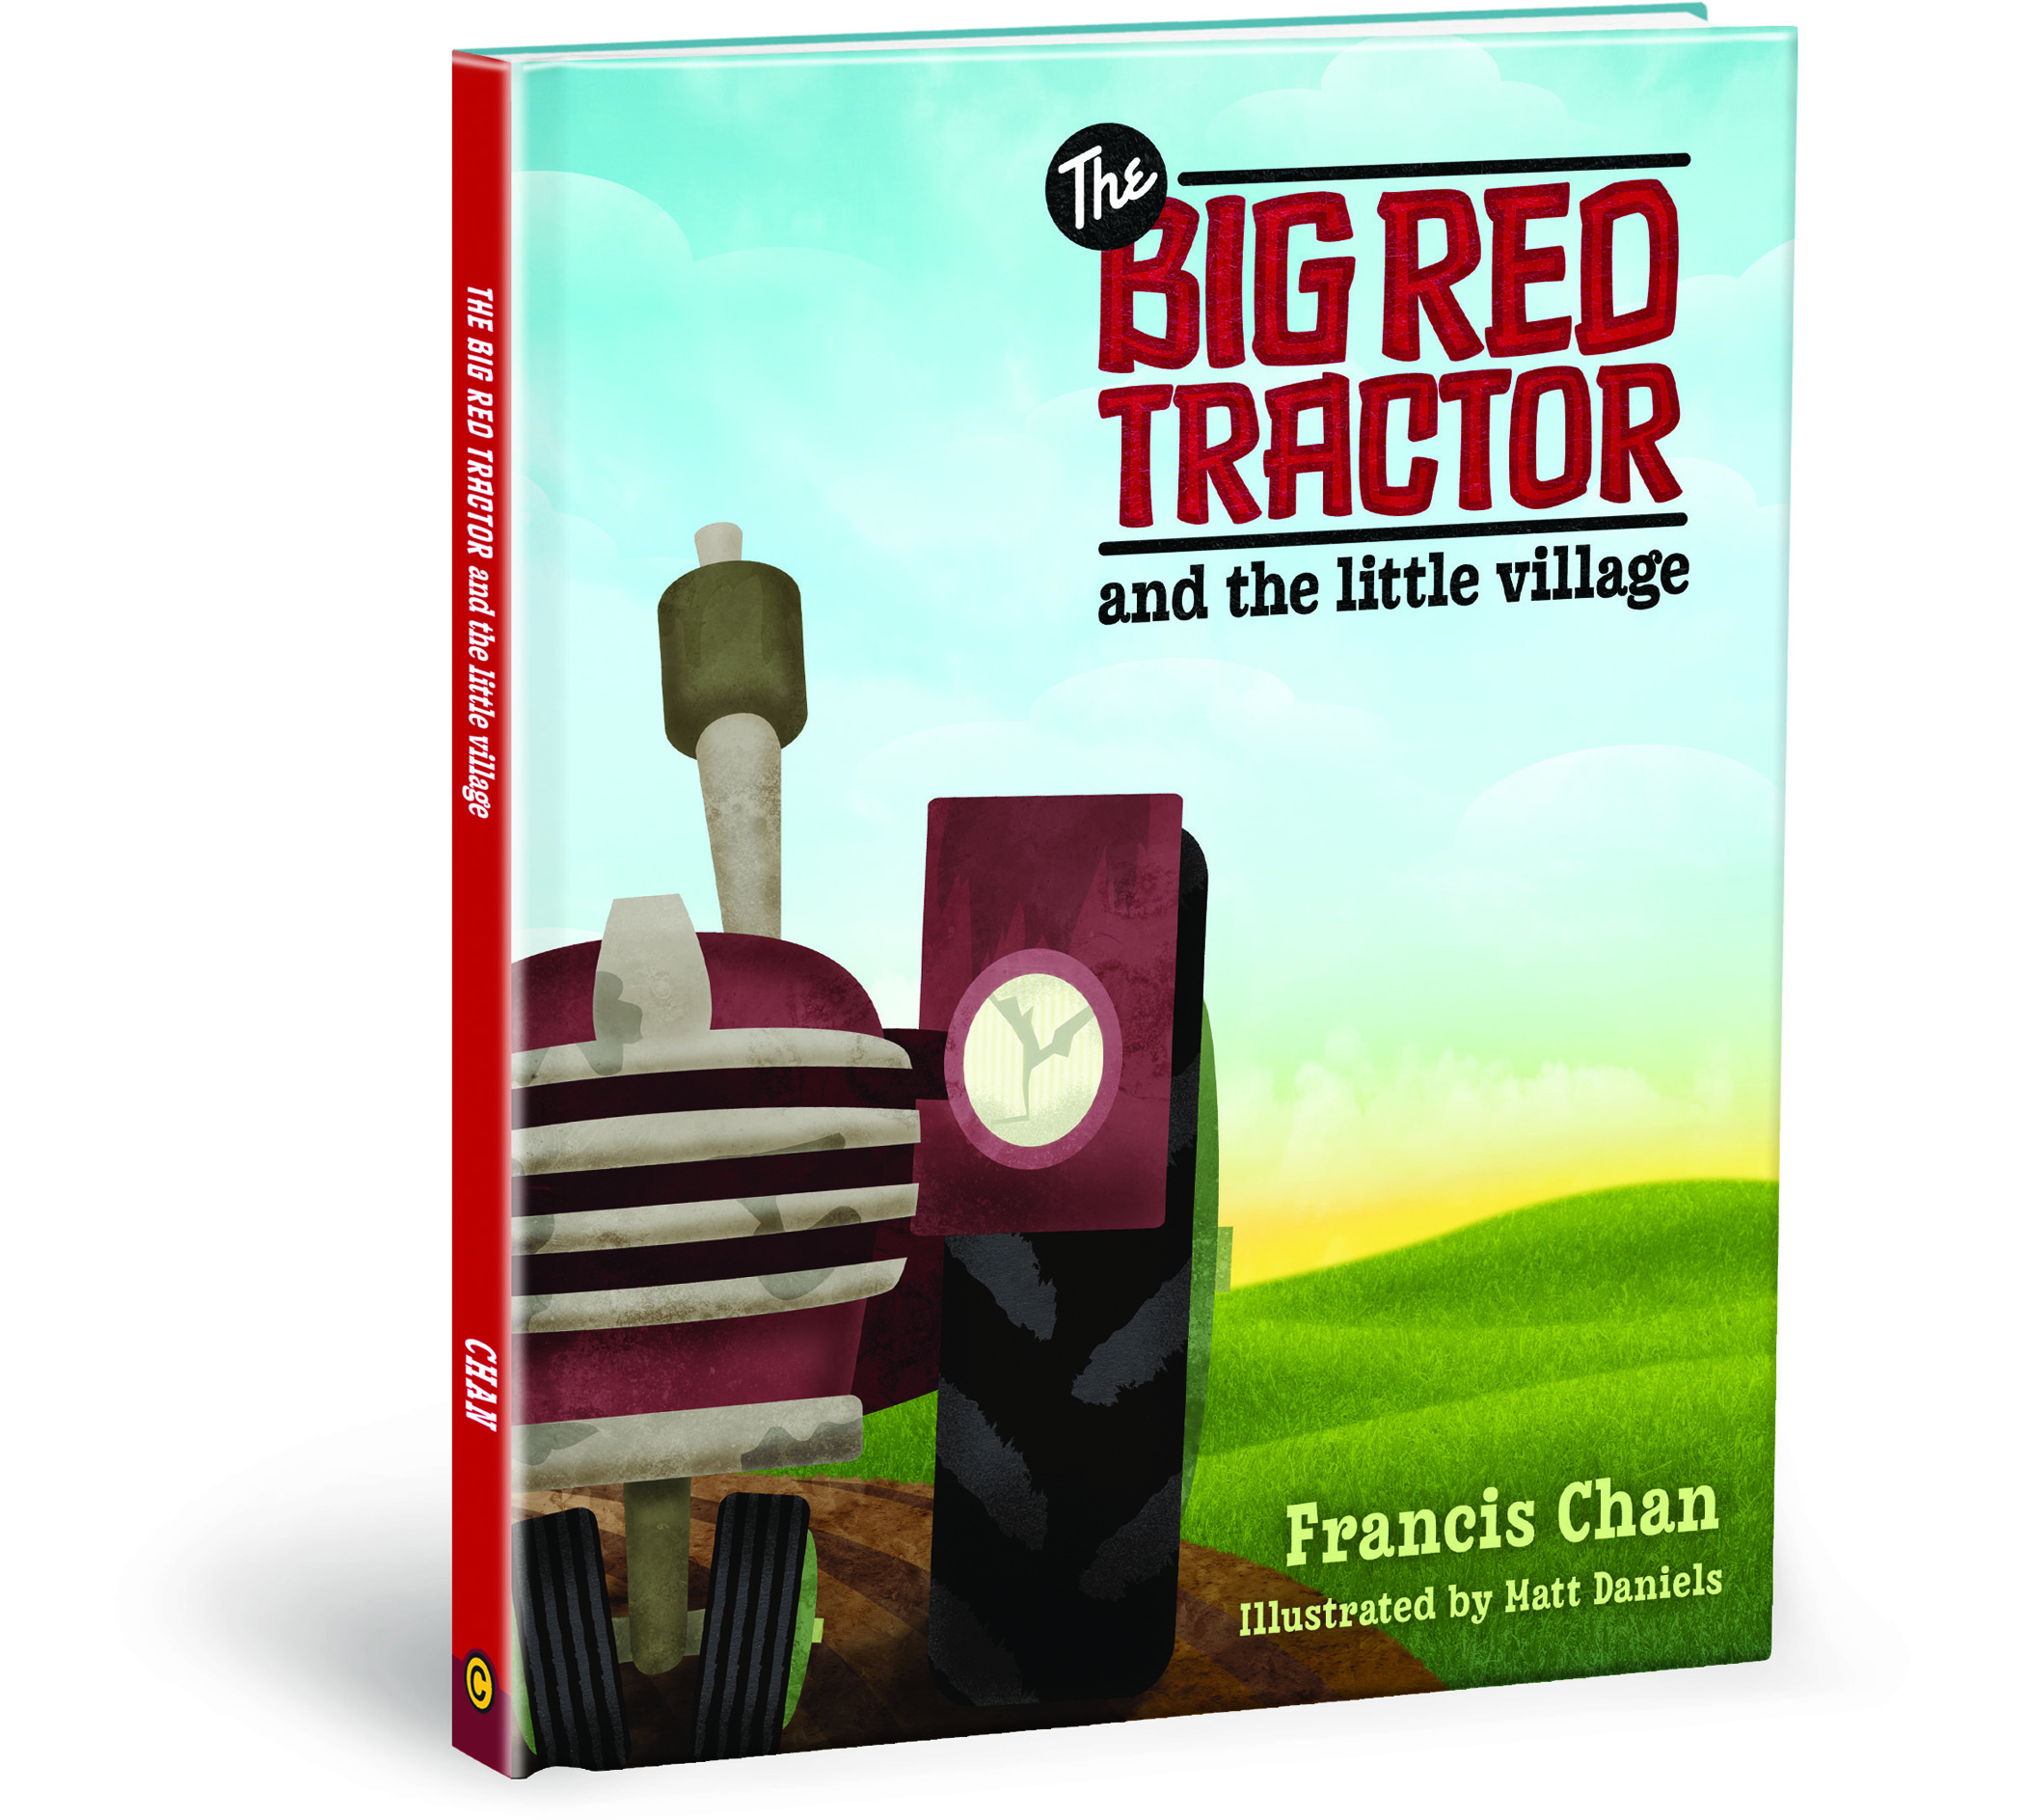 The Big Red Tractor and the Little Village - Francis Chan